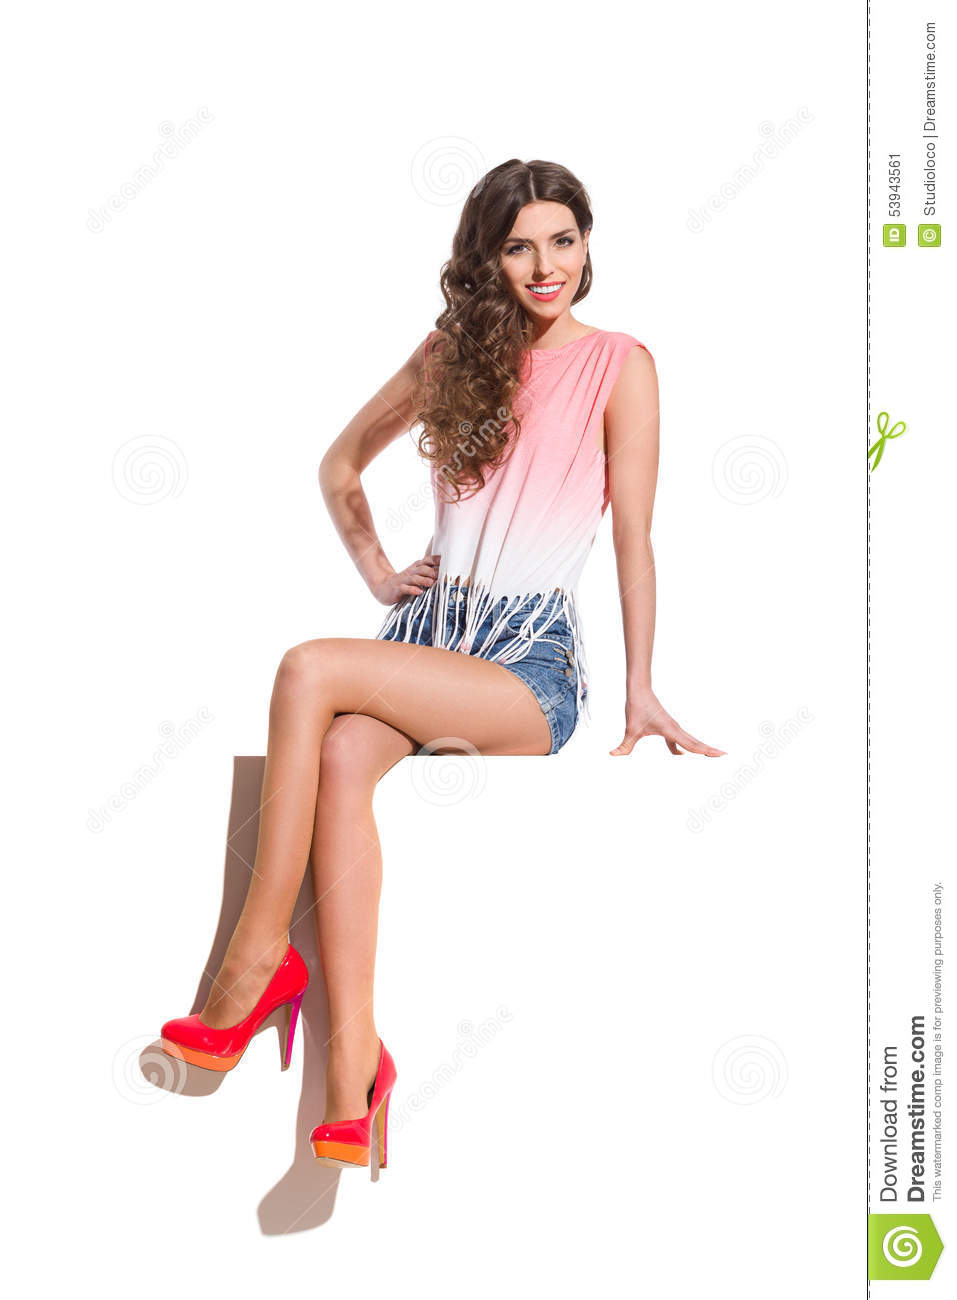 Girl Sitting On The Top Of A Banner Stock Image - Image Of Isolated, Cheerful 53943561-4724